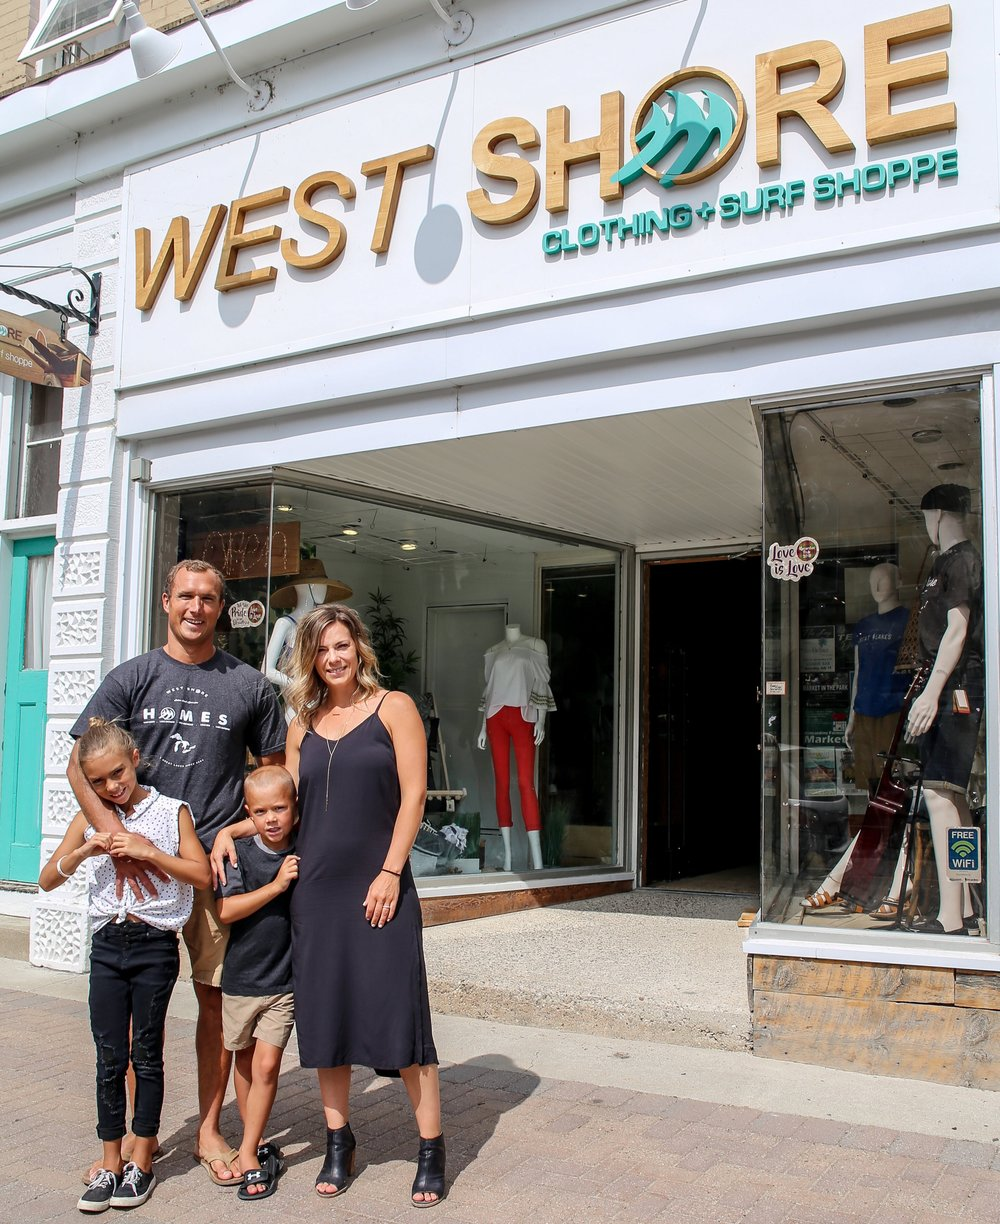 West+Shore+Storefront+family+picture.jpg